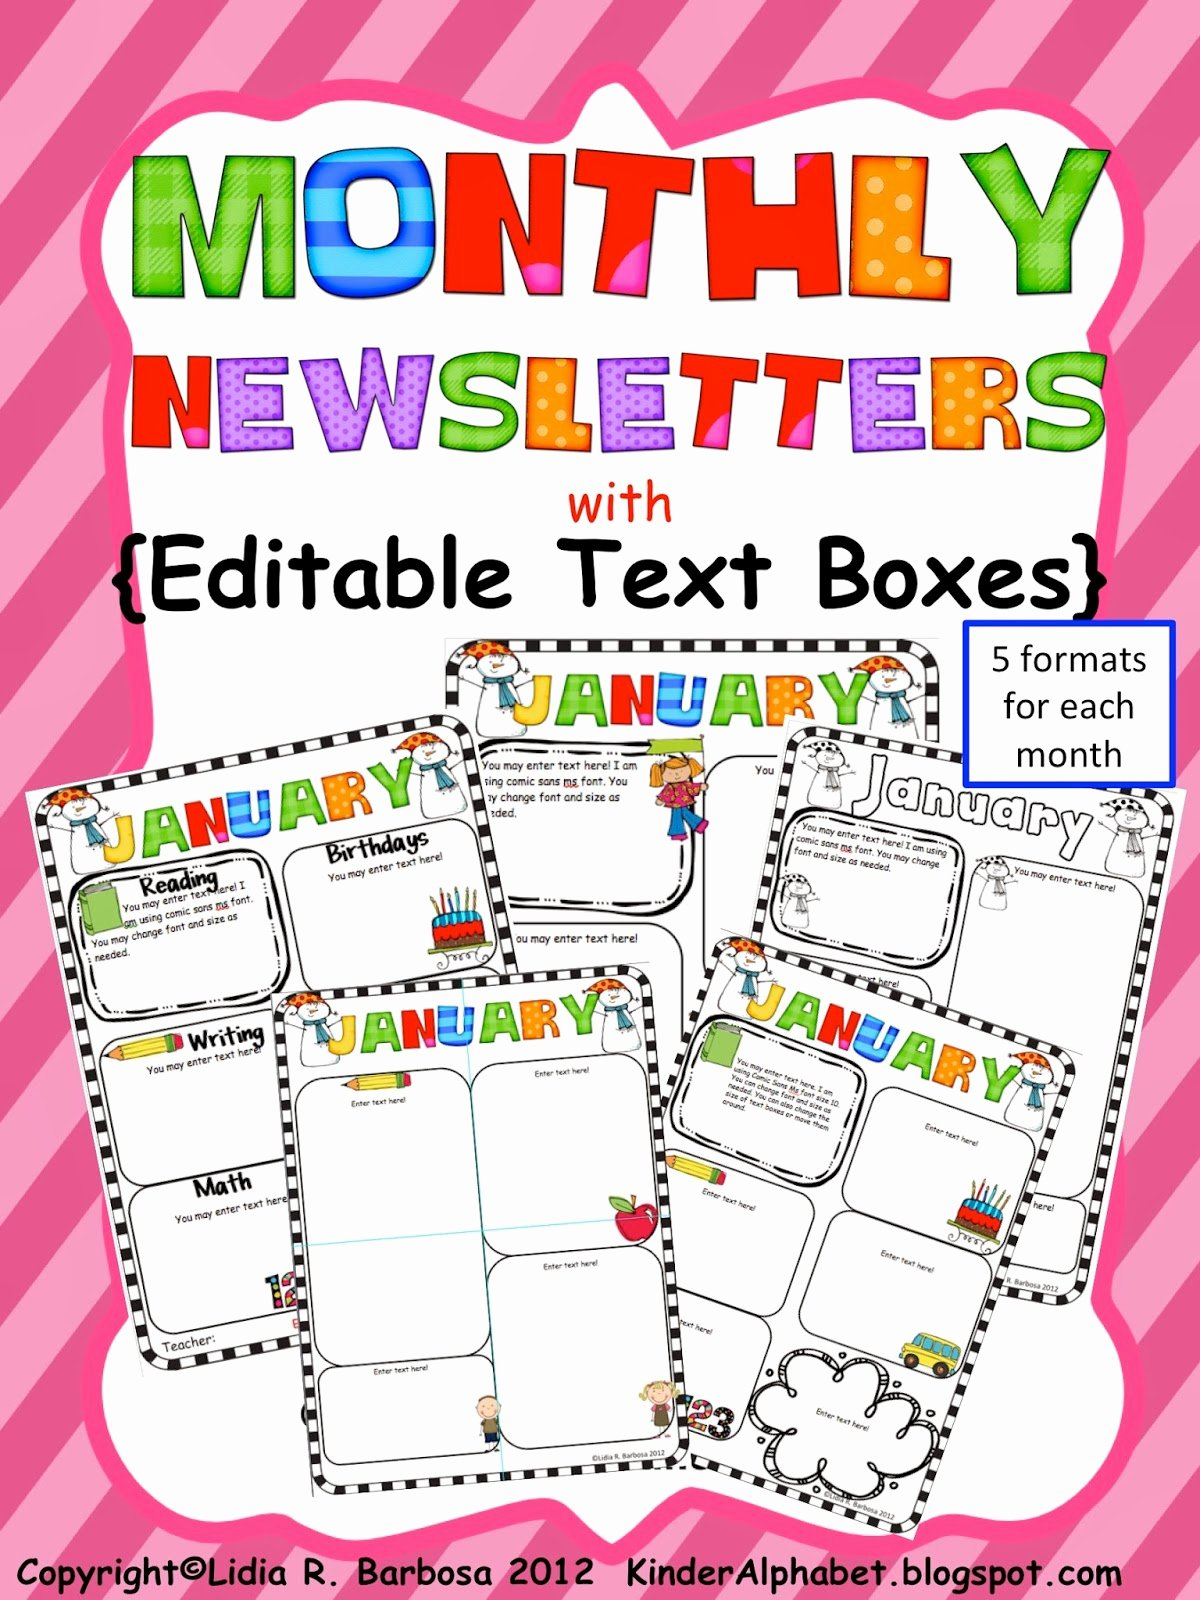 Free Newsletter Templates for Teachers New Kinder Alphabet — Teacher Resources In English and Spanish